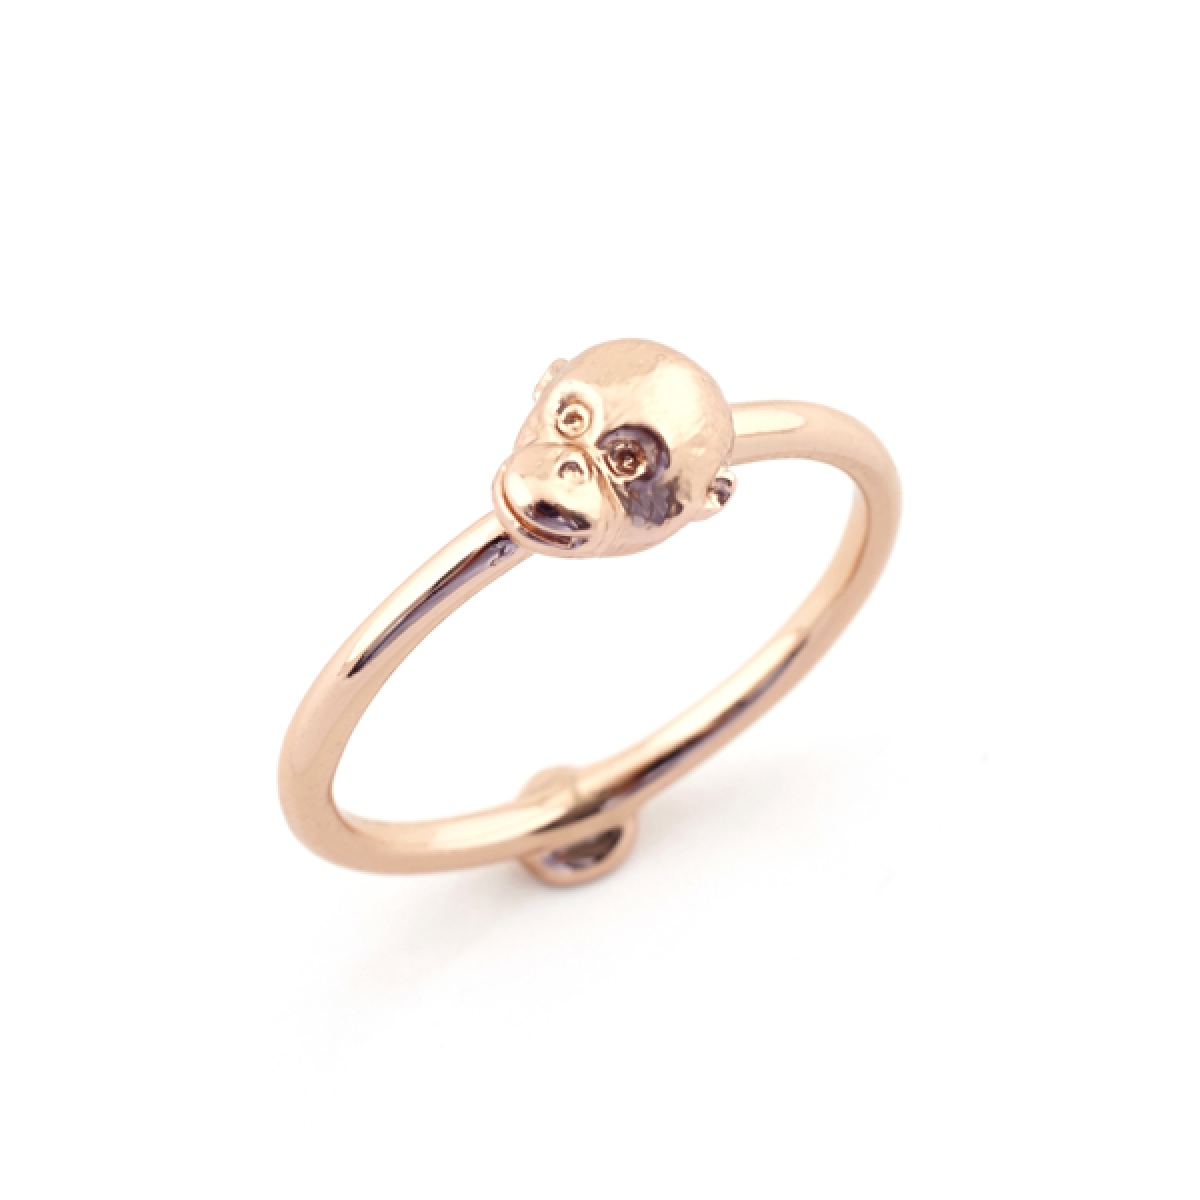 Orangutan Head Ring - Large Size Only